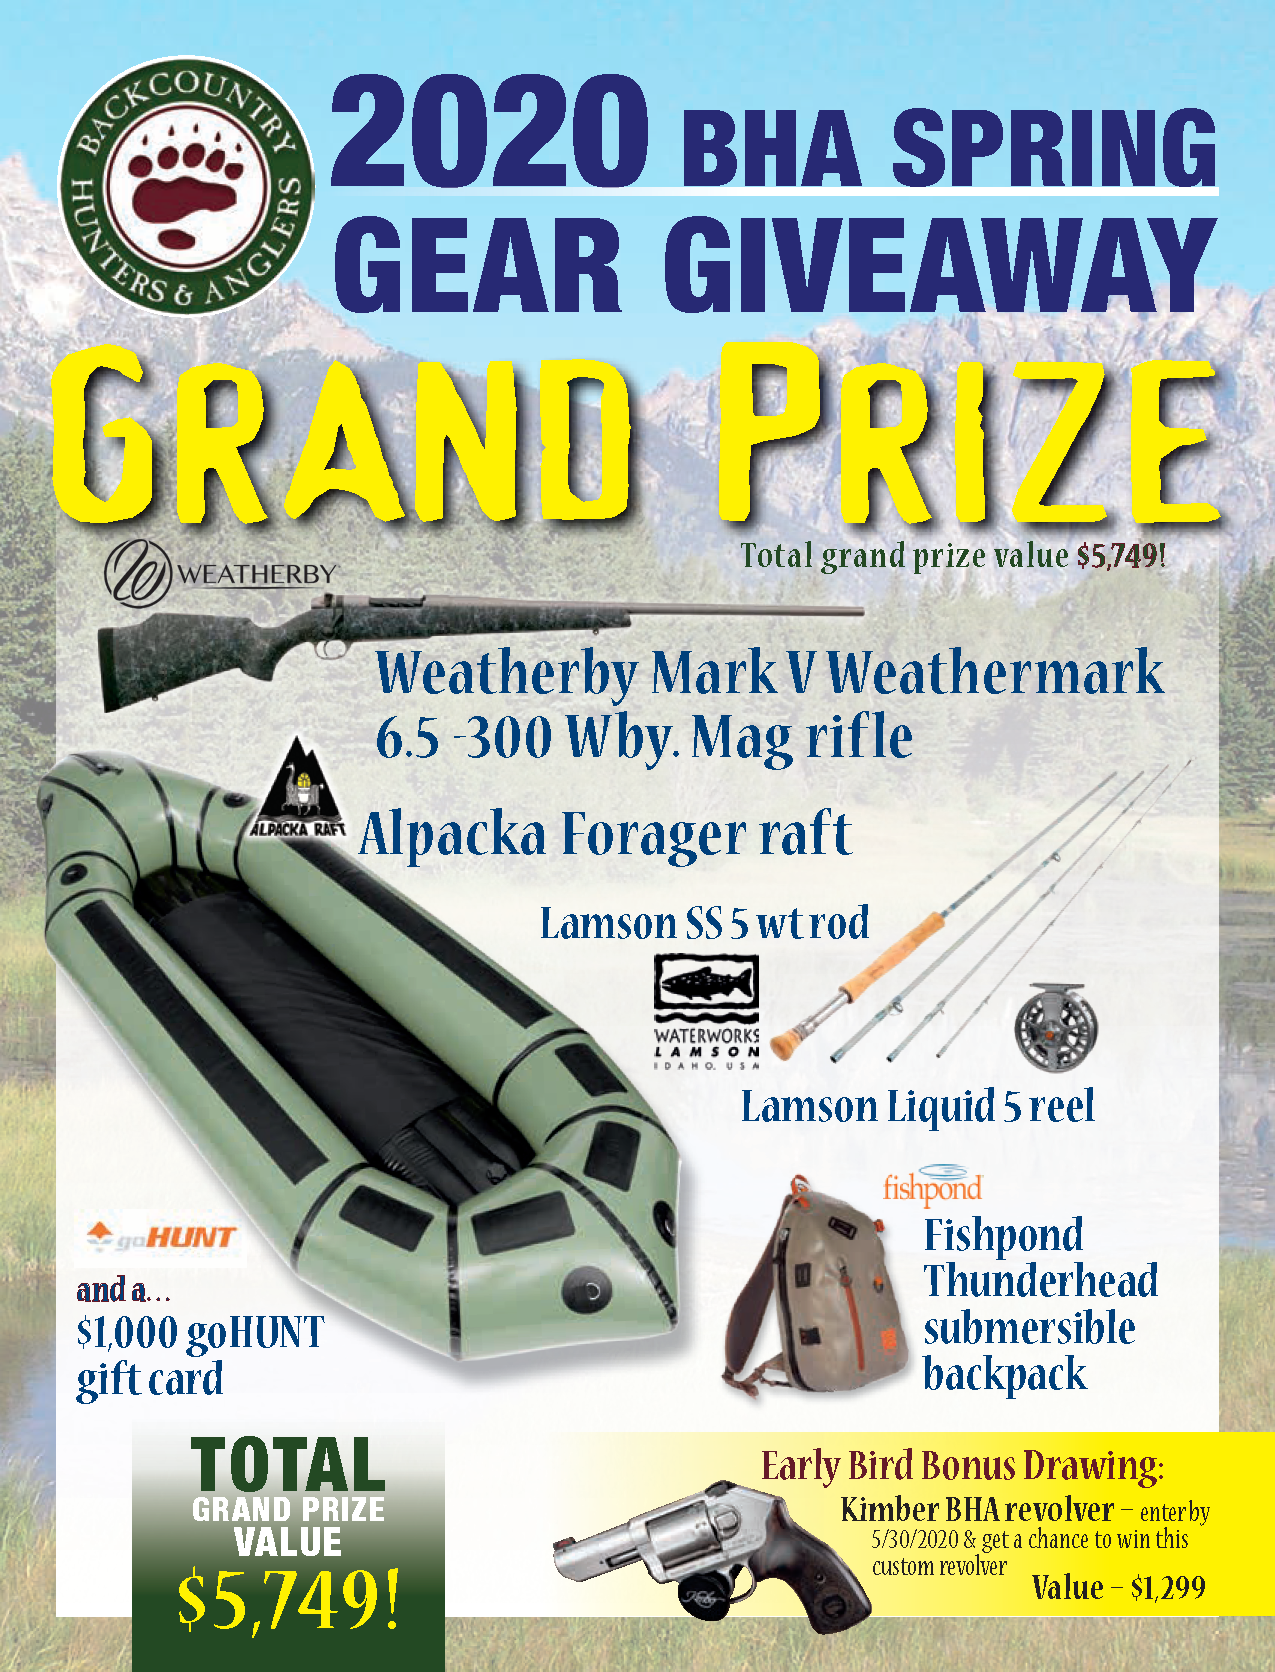 2020_BHA_Spring_Gear_Giveaway_Prizes_Email.png